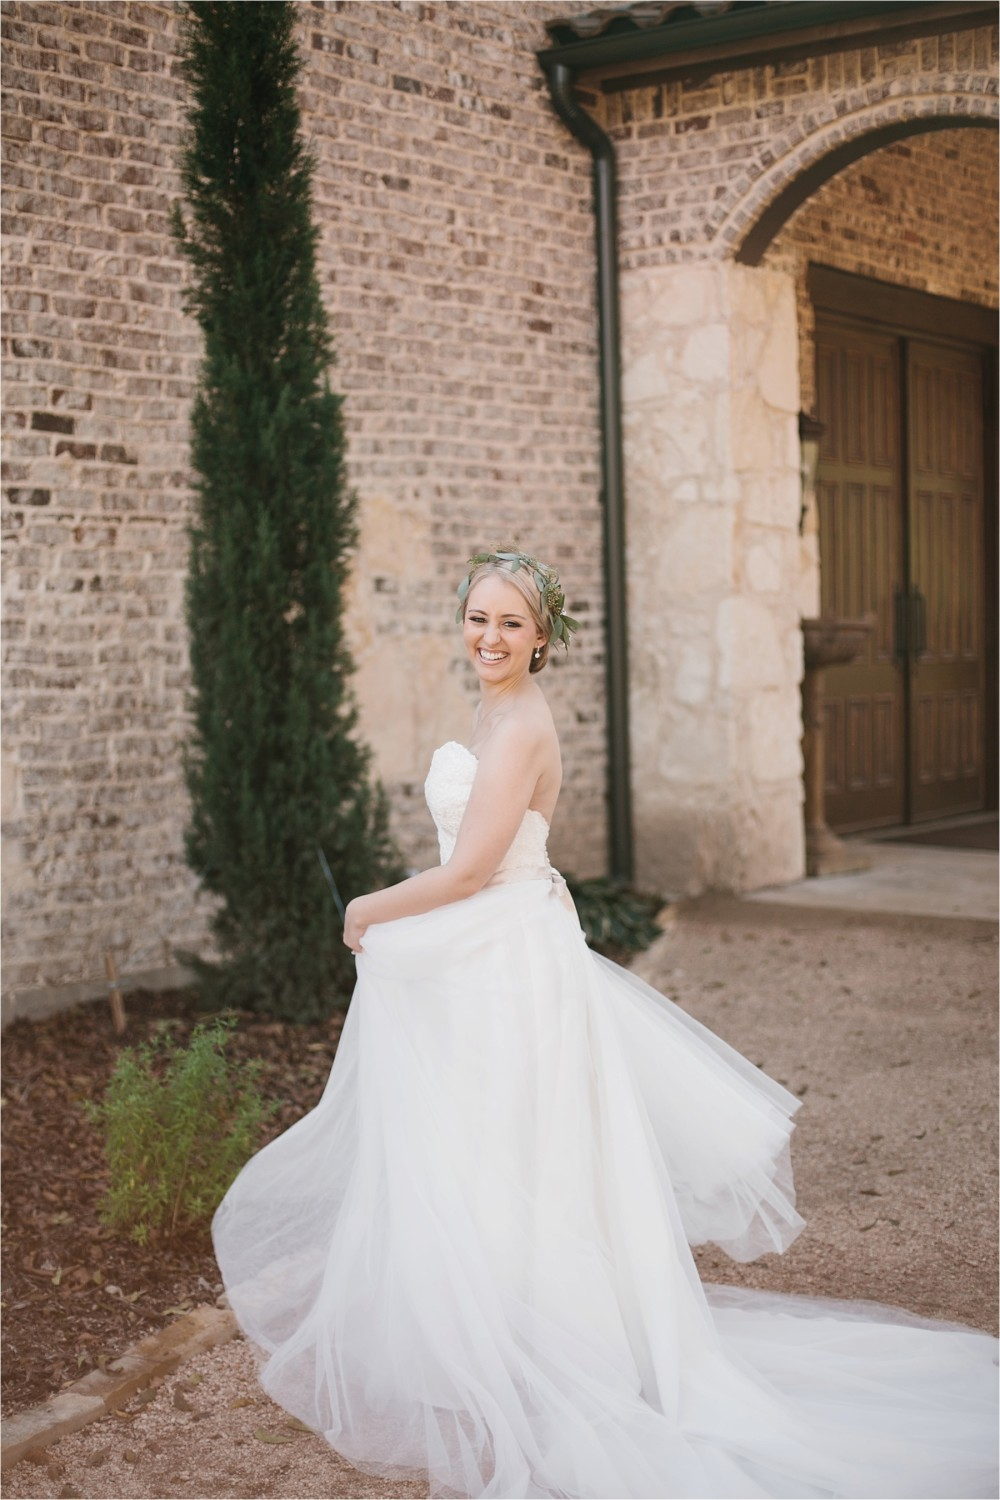 brad-lara-__-a-grey-and-blush-pink-intimate-wedding-at-hidden-waters-event-center-in-waxahachie-tx-by-north-texas-wedding-photographer-rachel-meagan-photography-_-017